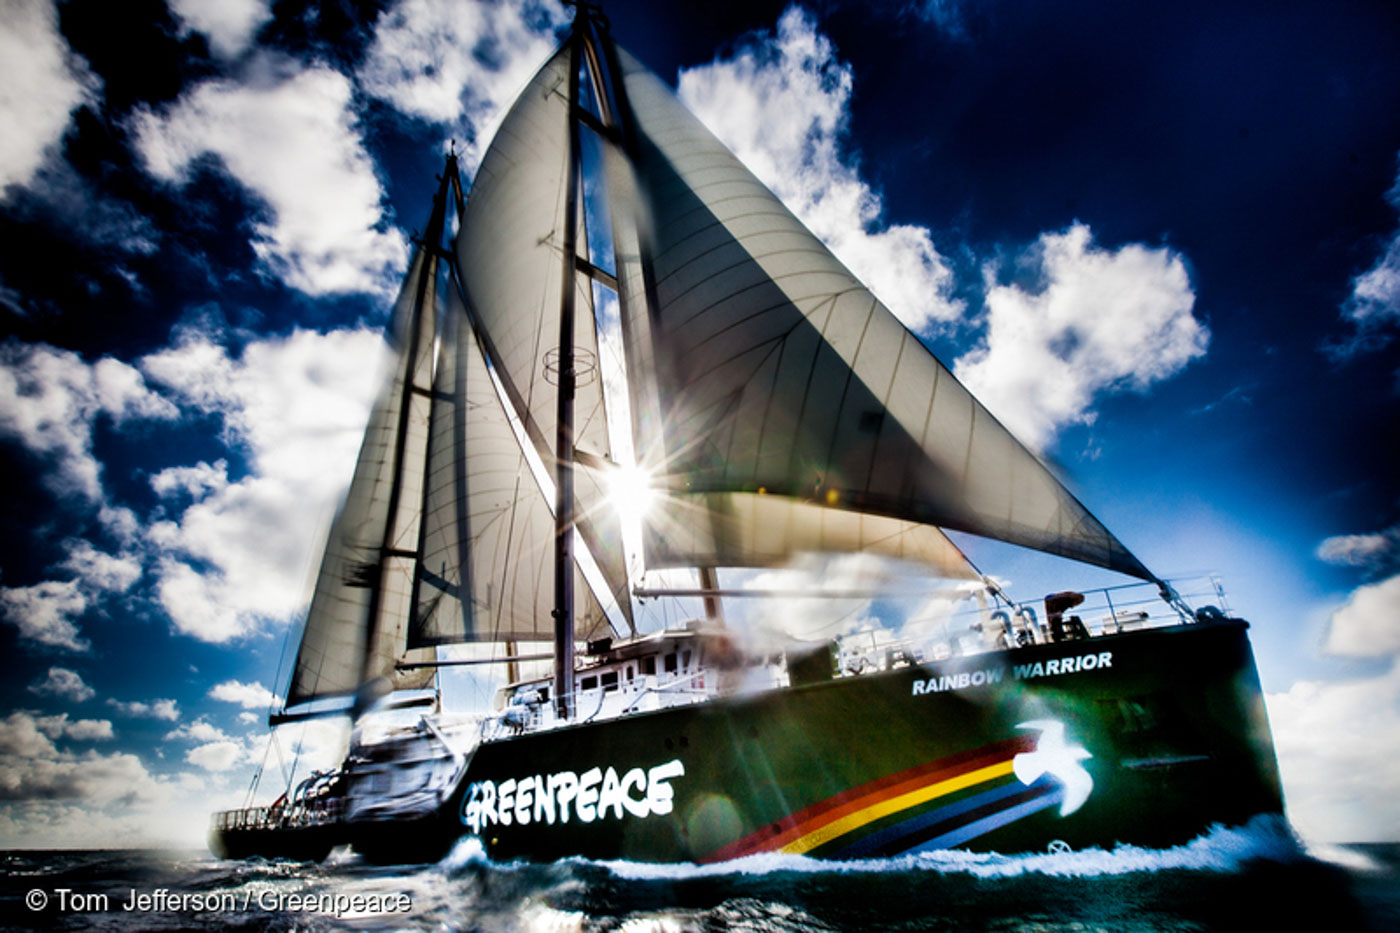 RAINBOW WARRIOR. The Rainbow Warrior is under full sail off the Queensland coast during the 'Save the Reef' tour. File photo by Tom Jefferson / Greenpeace